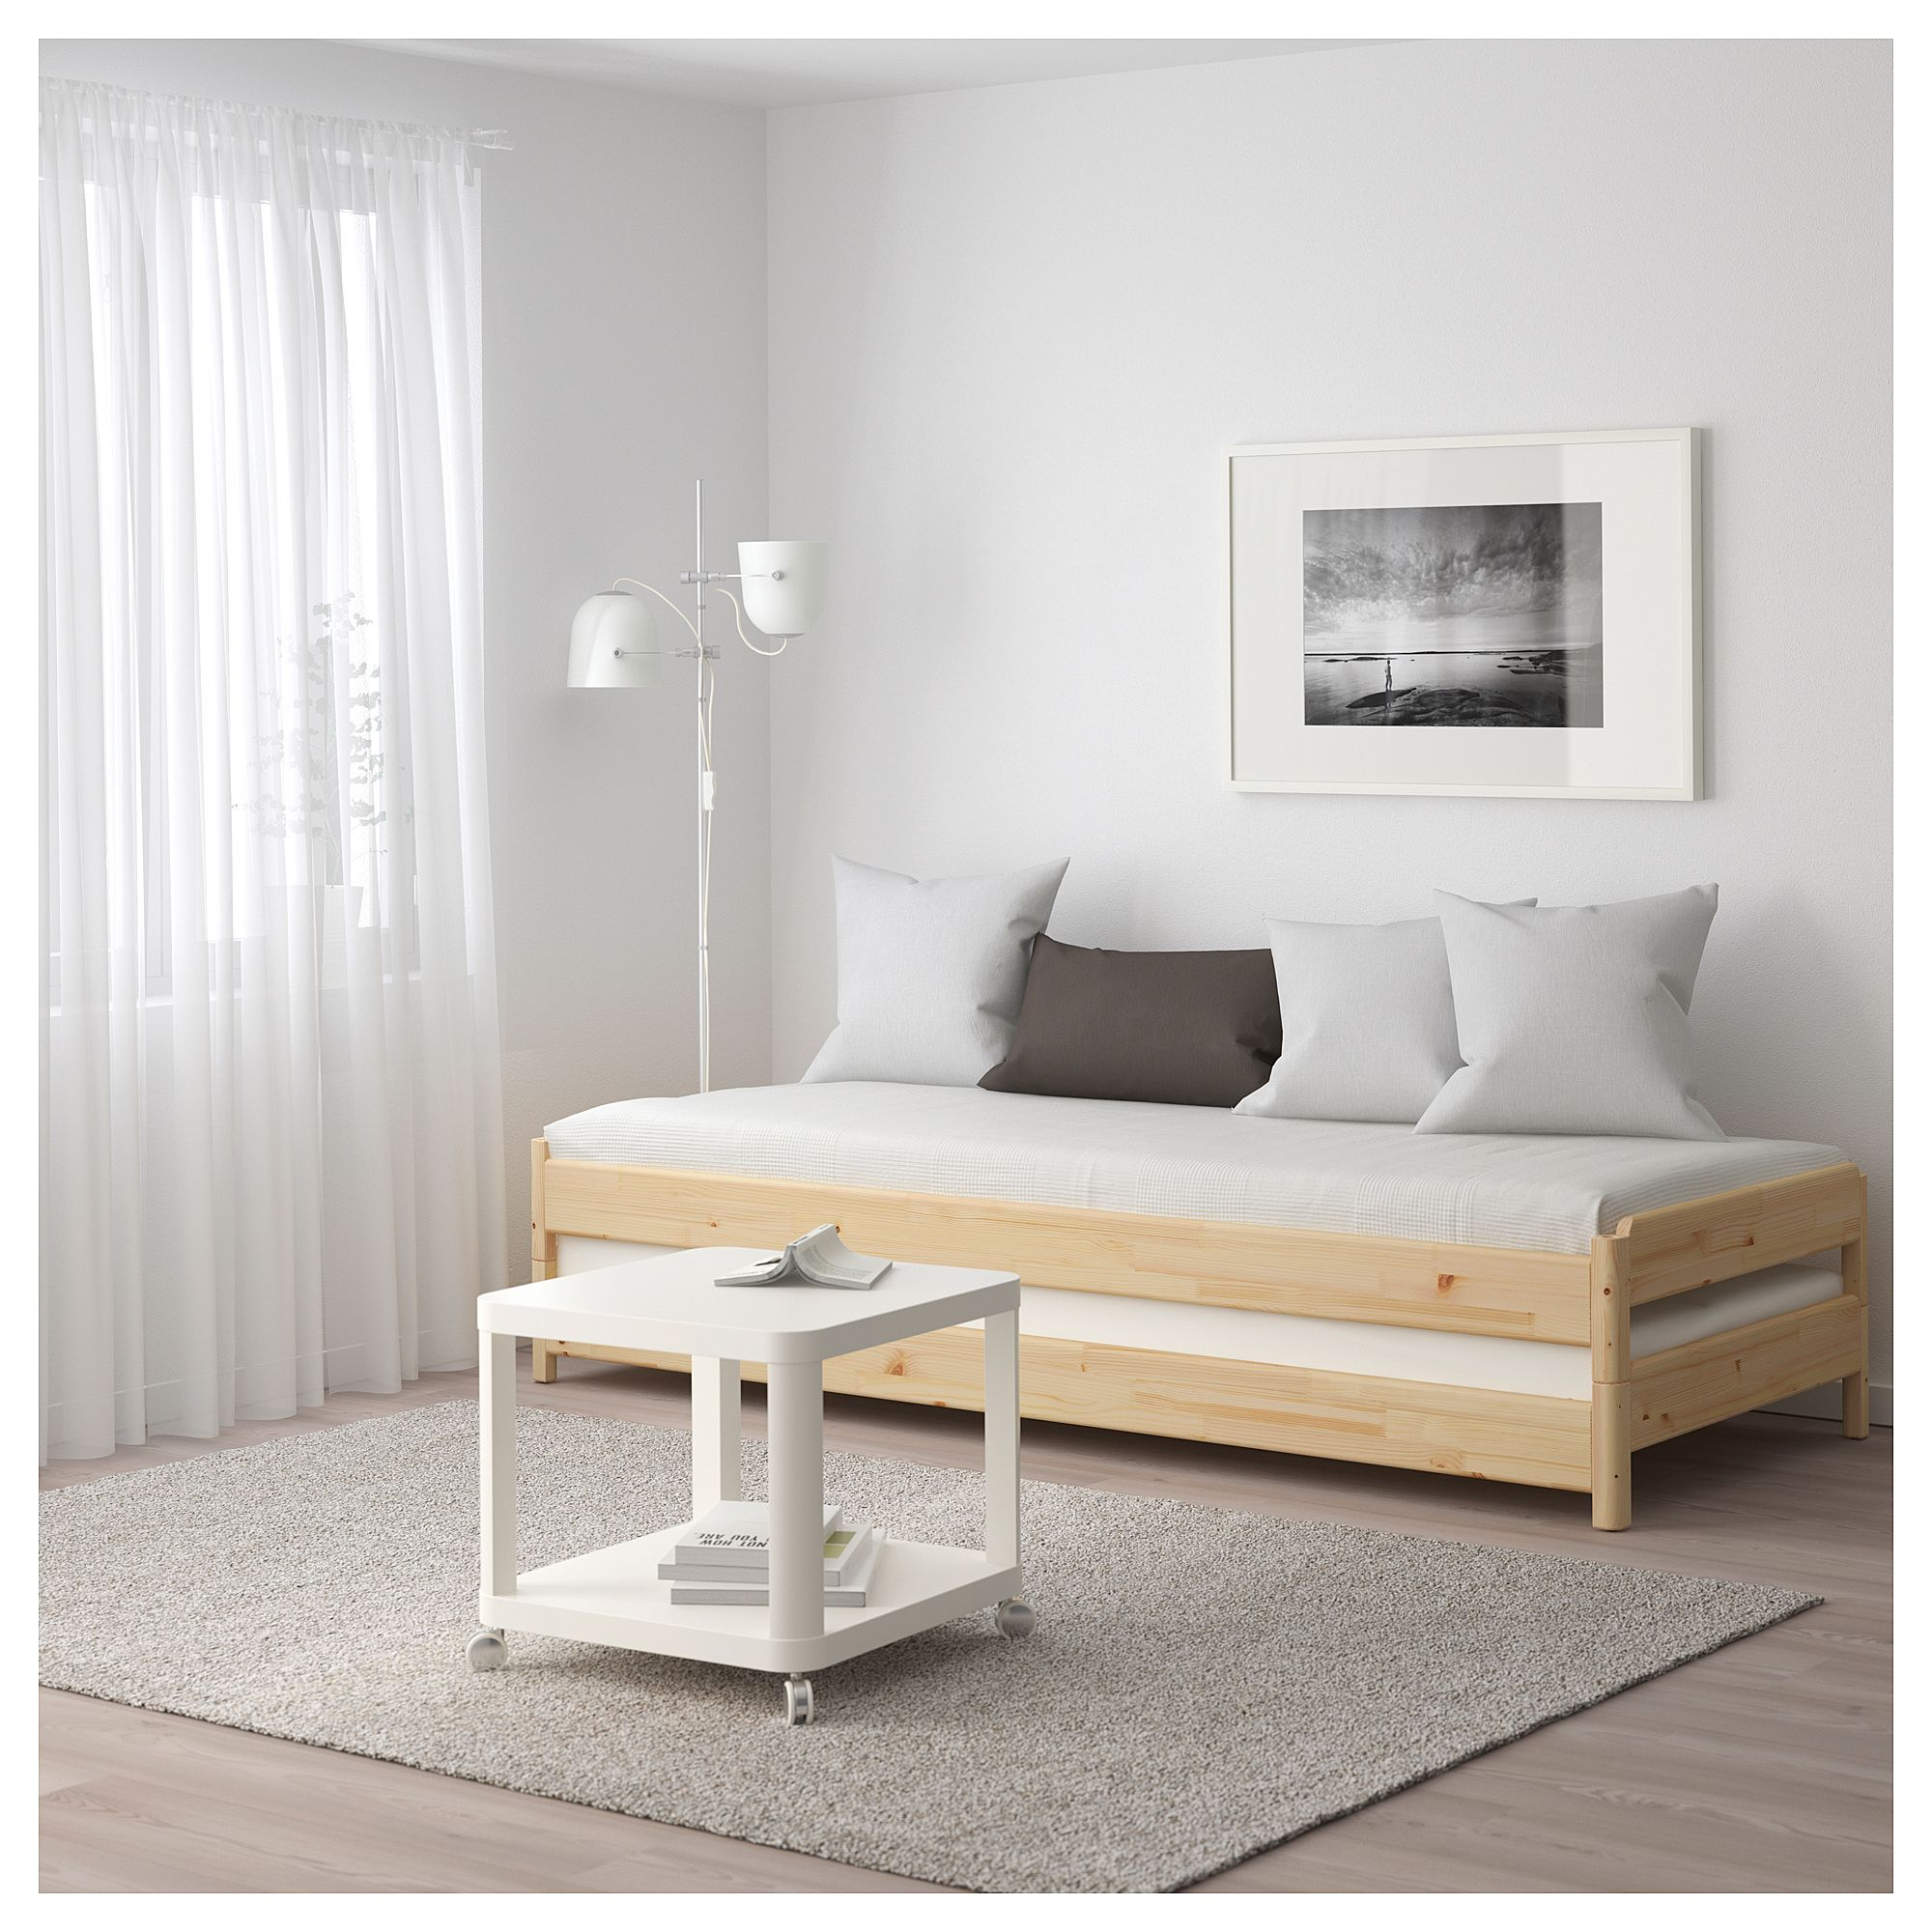 Ikea Utaker Stackable Bed With 2 Mattresses Pine Husvika If